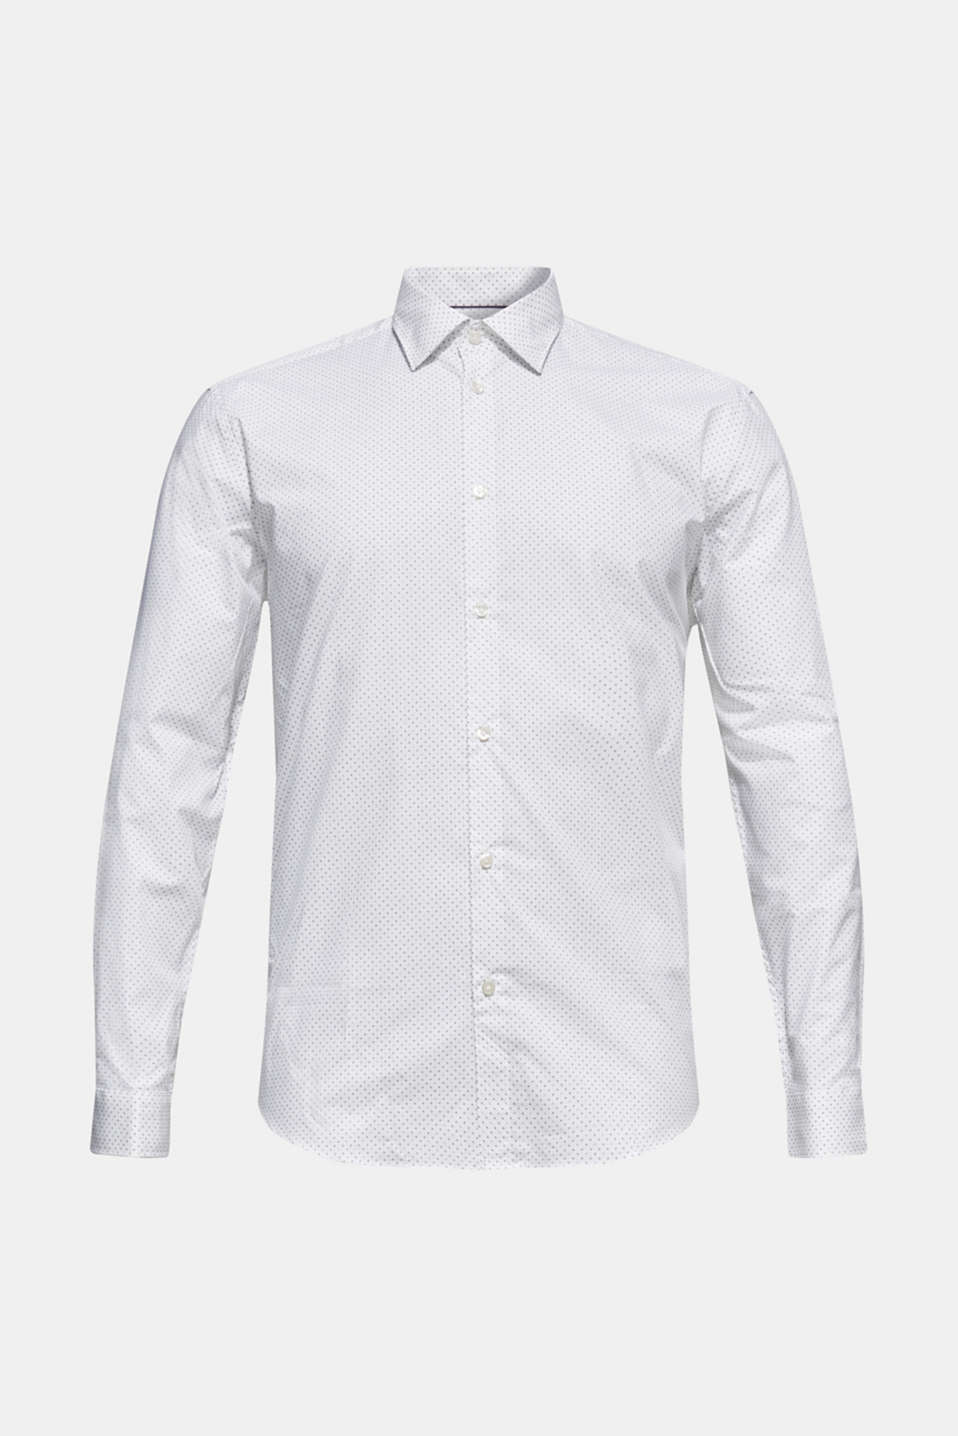 Shirt with micro print, 100% cotton, WHITE, detail image number 7